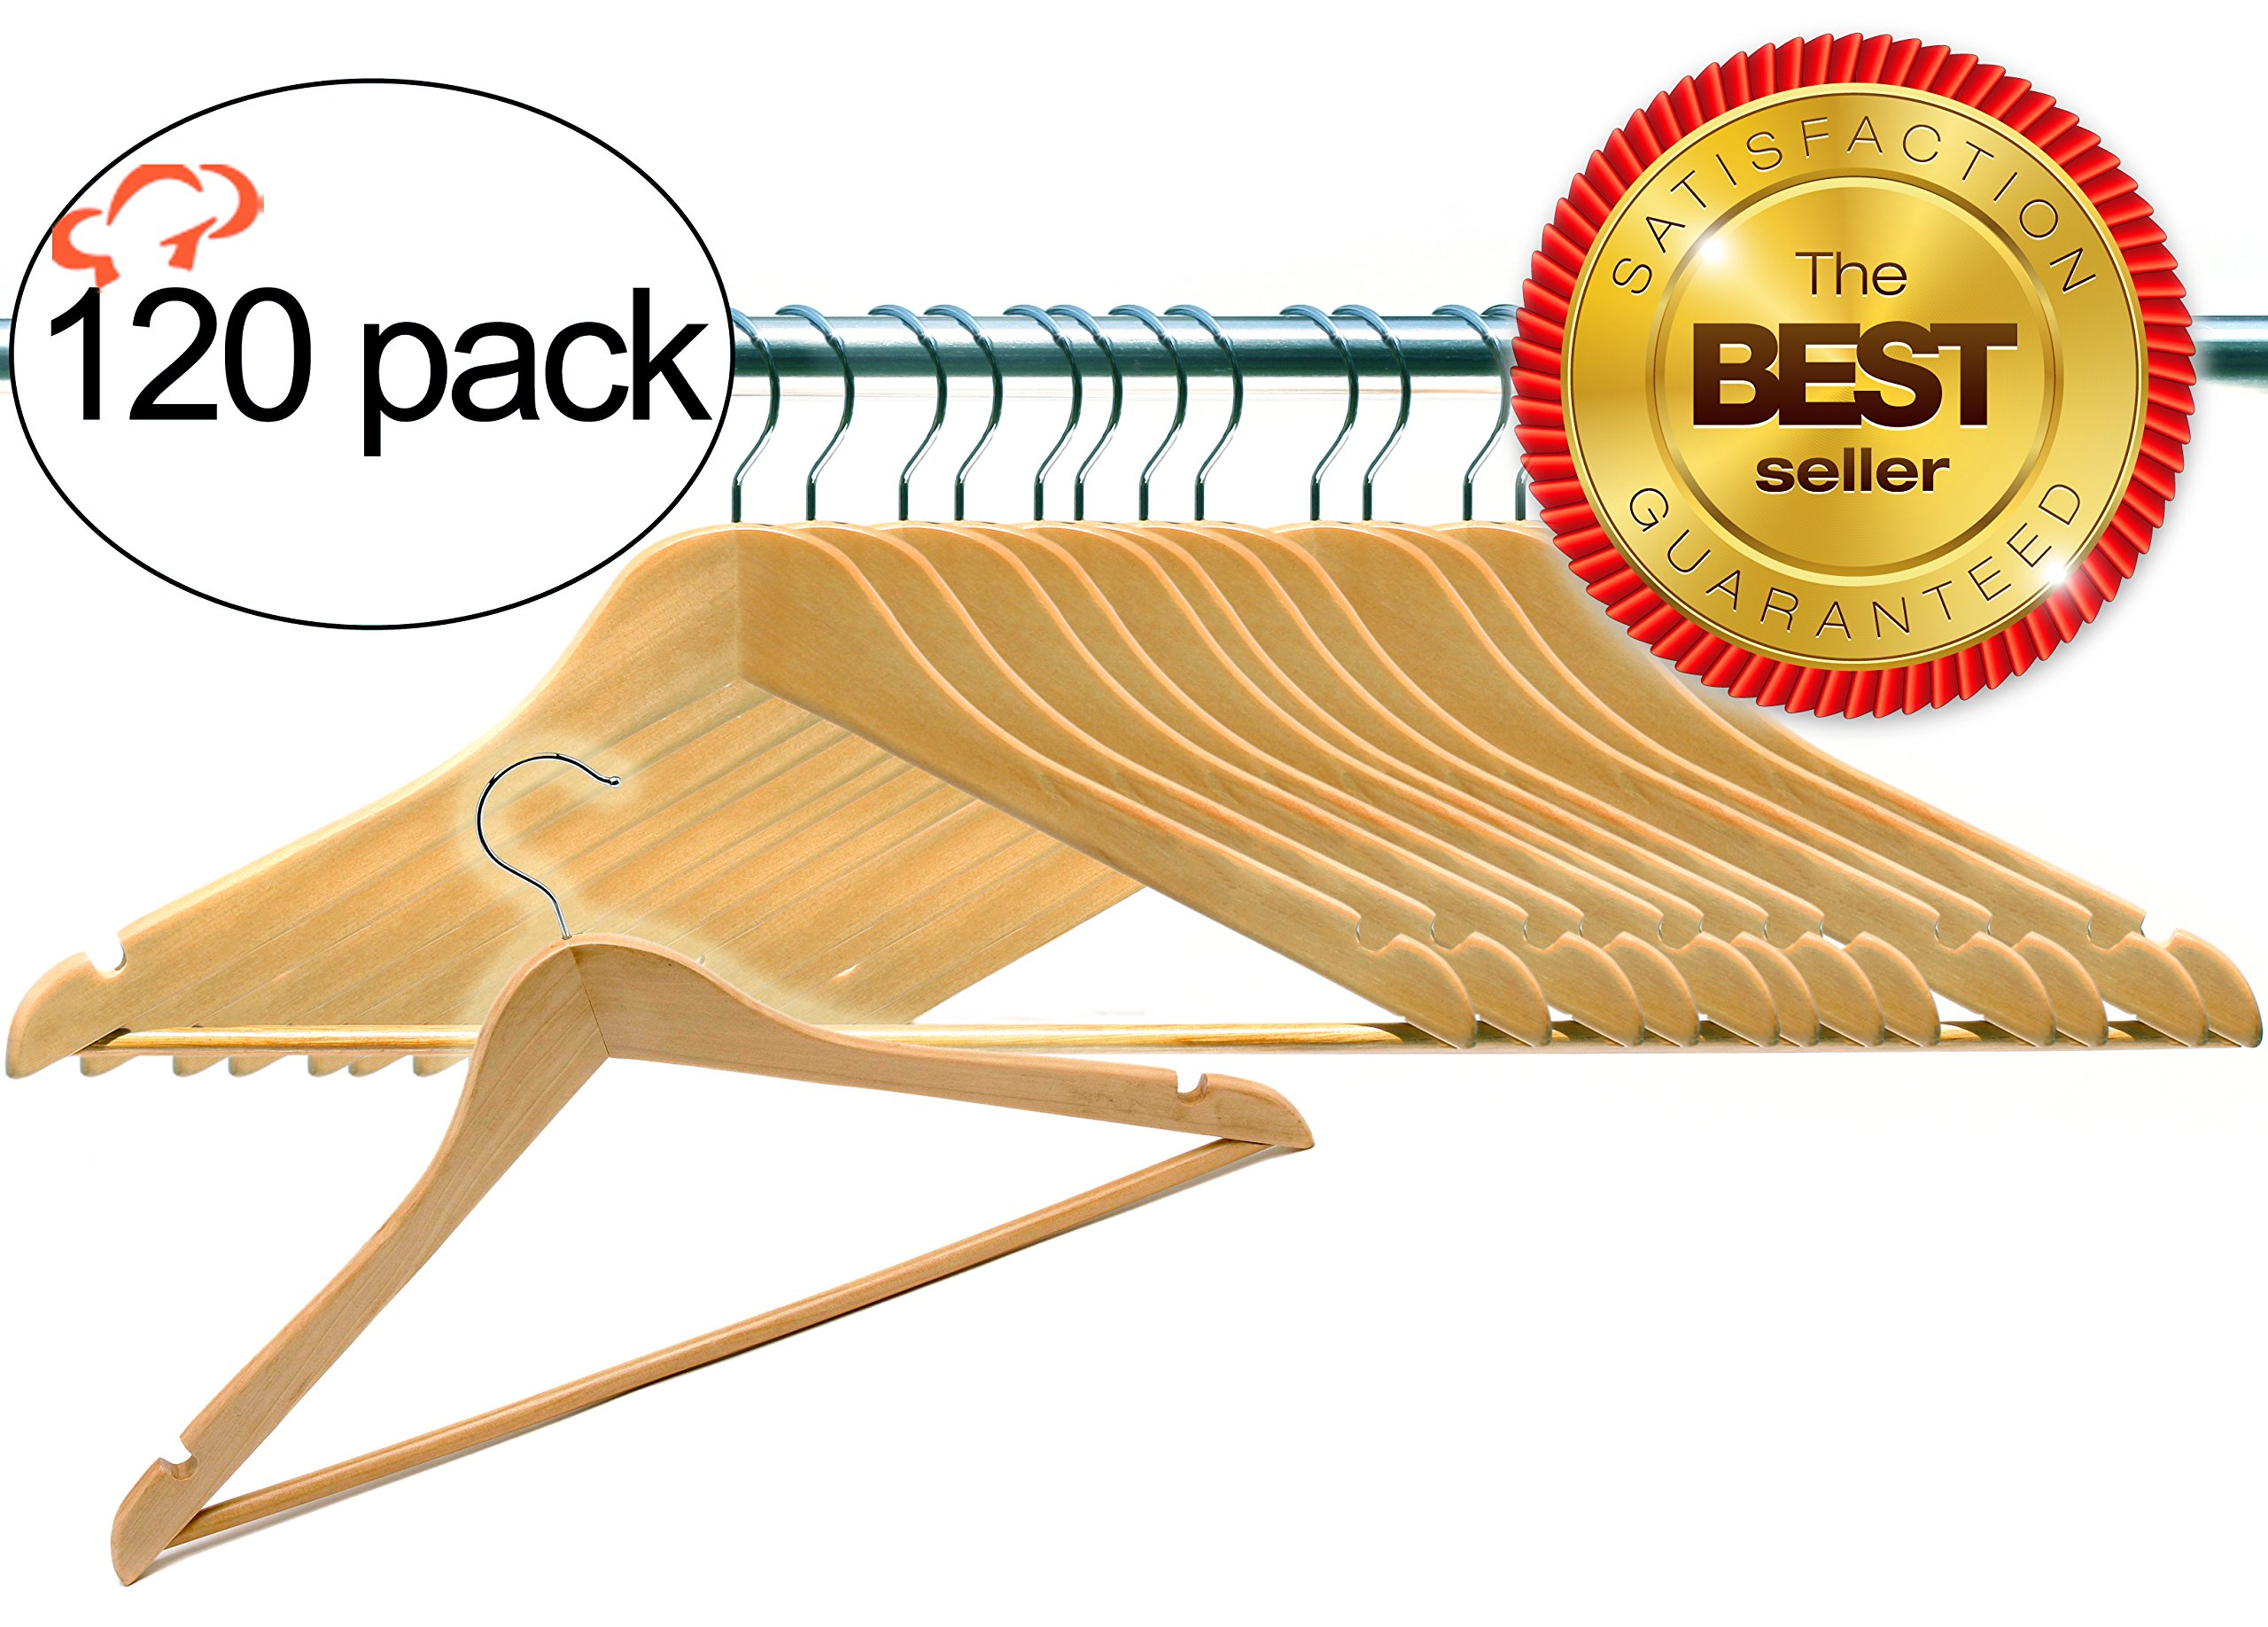 Tiger Chef 120 Pack Multifunctional Natural Solid Wood Slim Suit, Trousers and Coat Hangers (120 Pack)